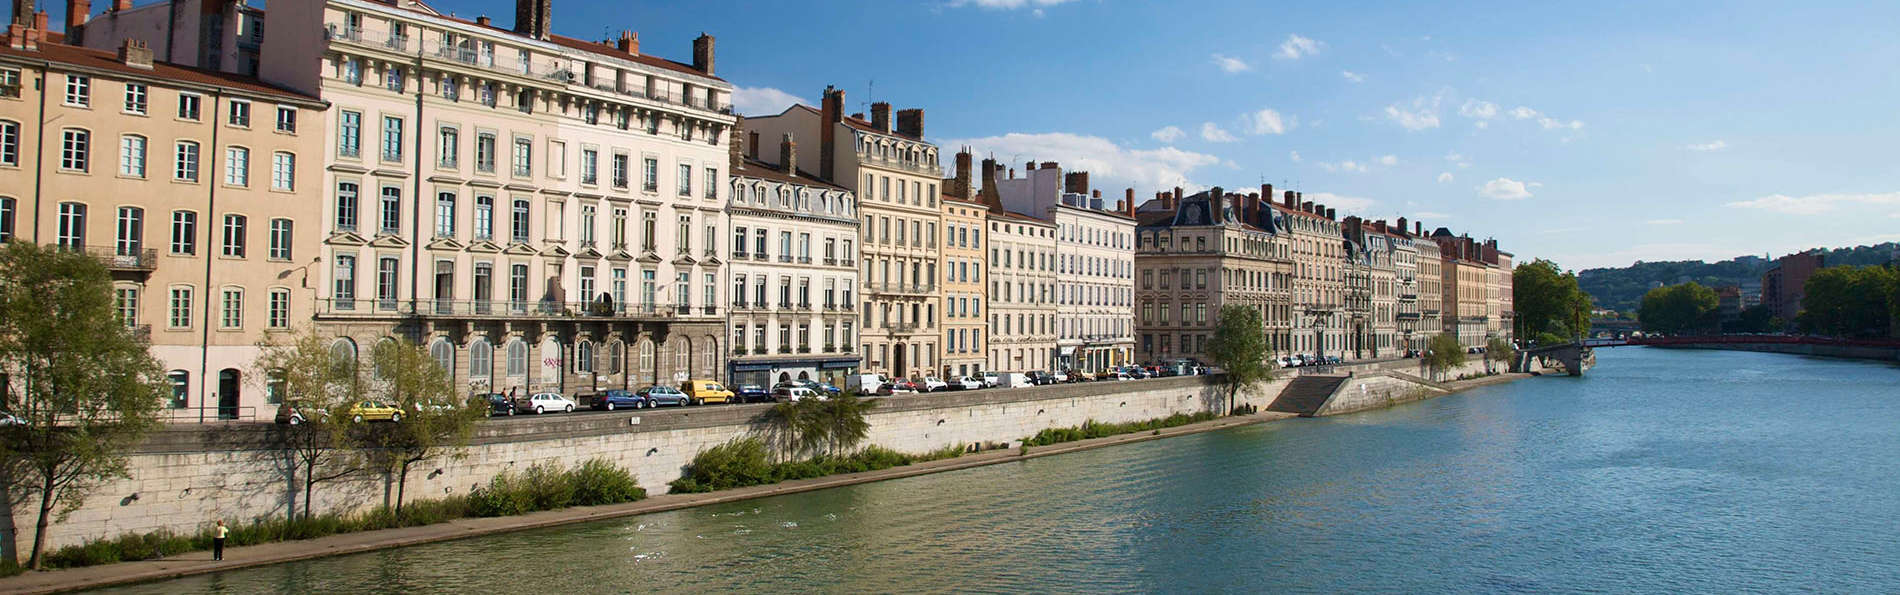 Reservation Hotel Derniere Minute France